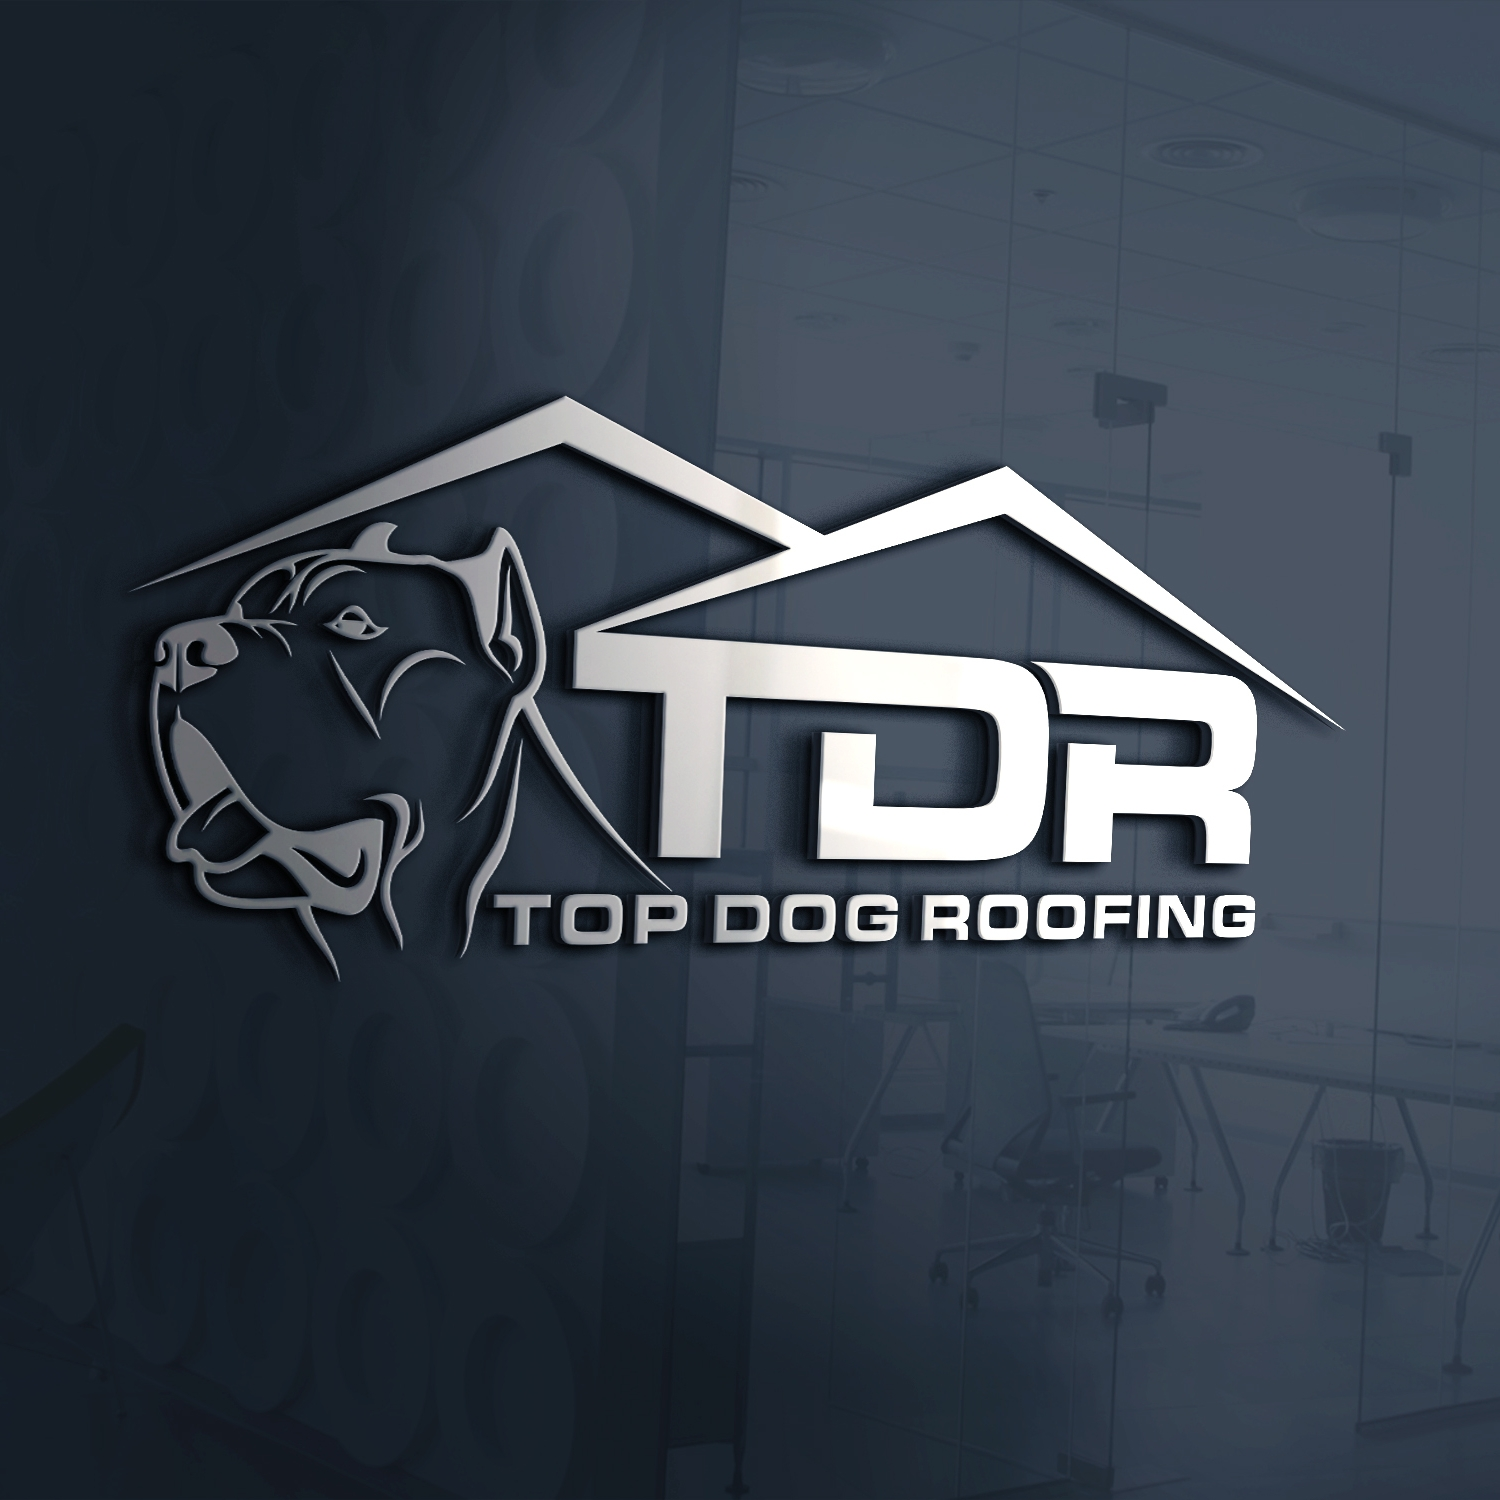 Top Dog Roofing Inc logo